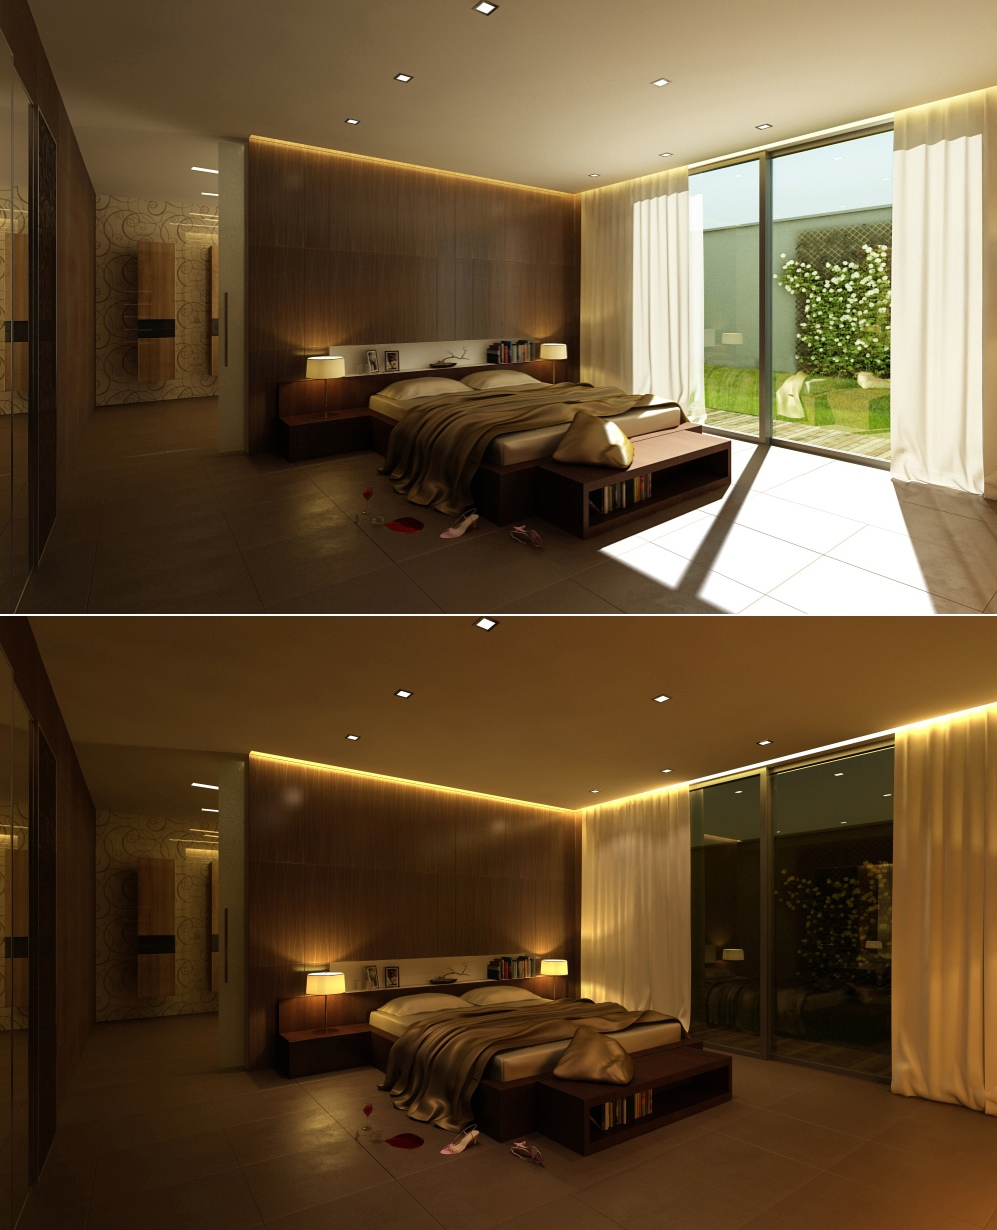 Stylish bedroom designs with beautiful creative details - Iluminacion led para dormitorios ...